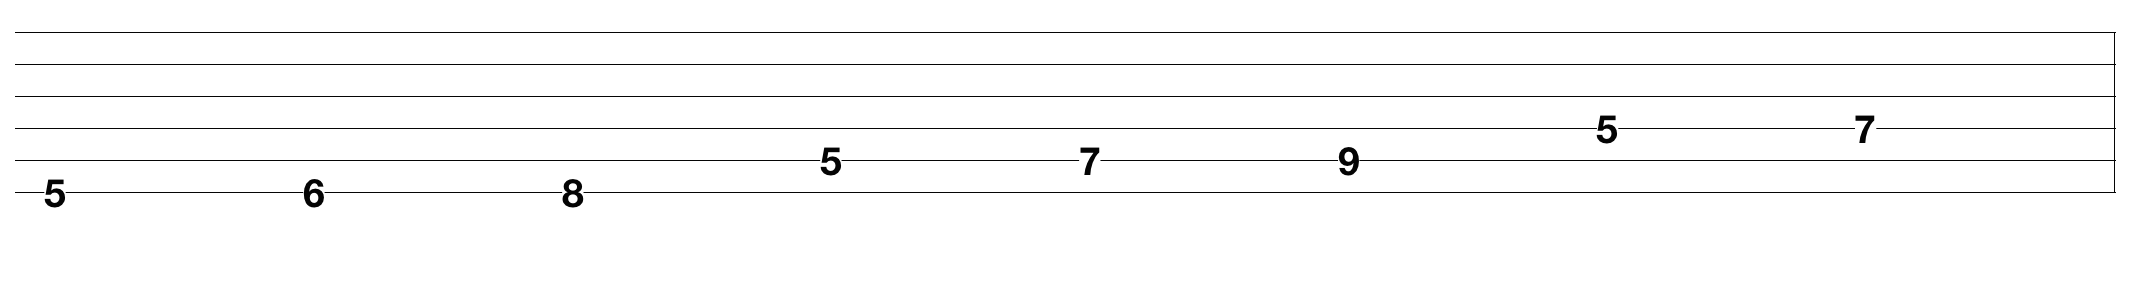 melodic-guitar-scales_2.png